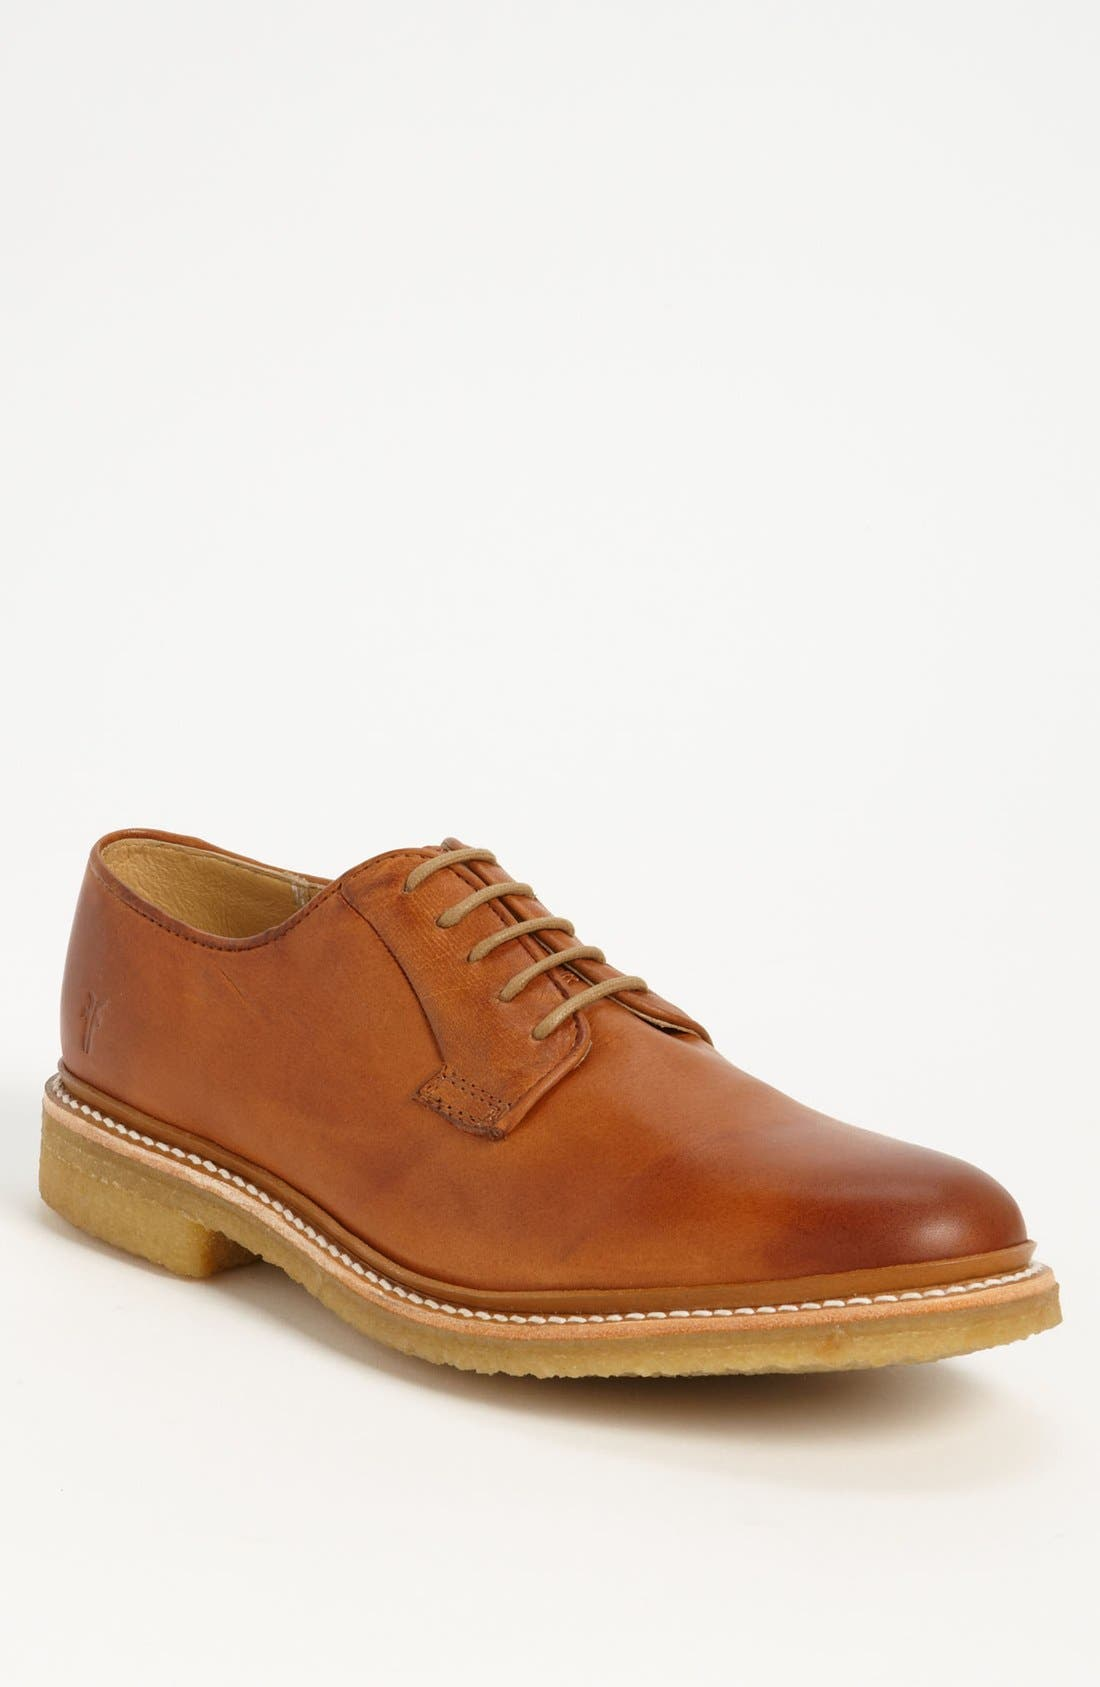 Main Image - Frye 'James' Derby